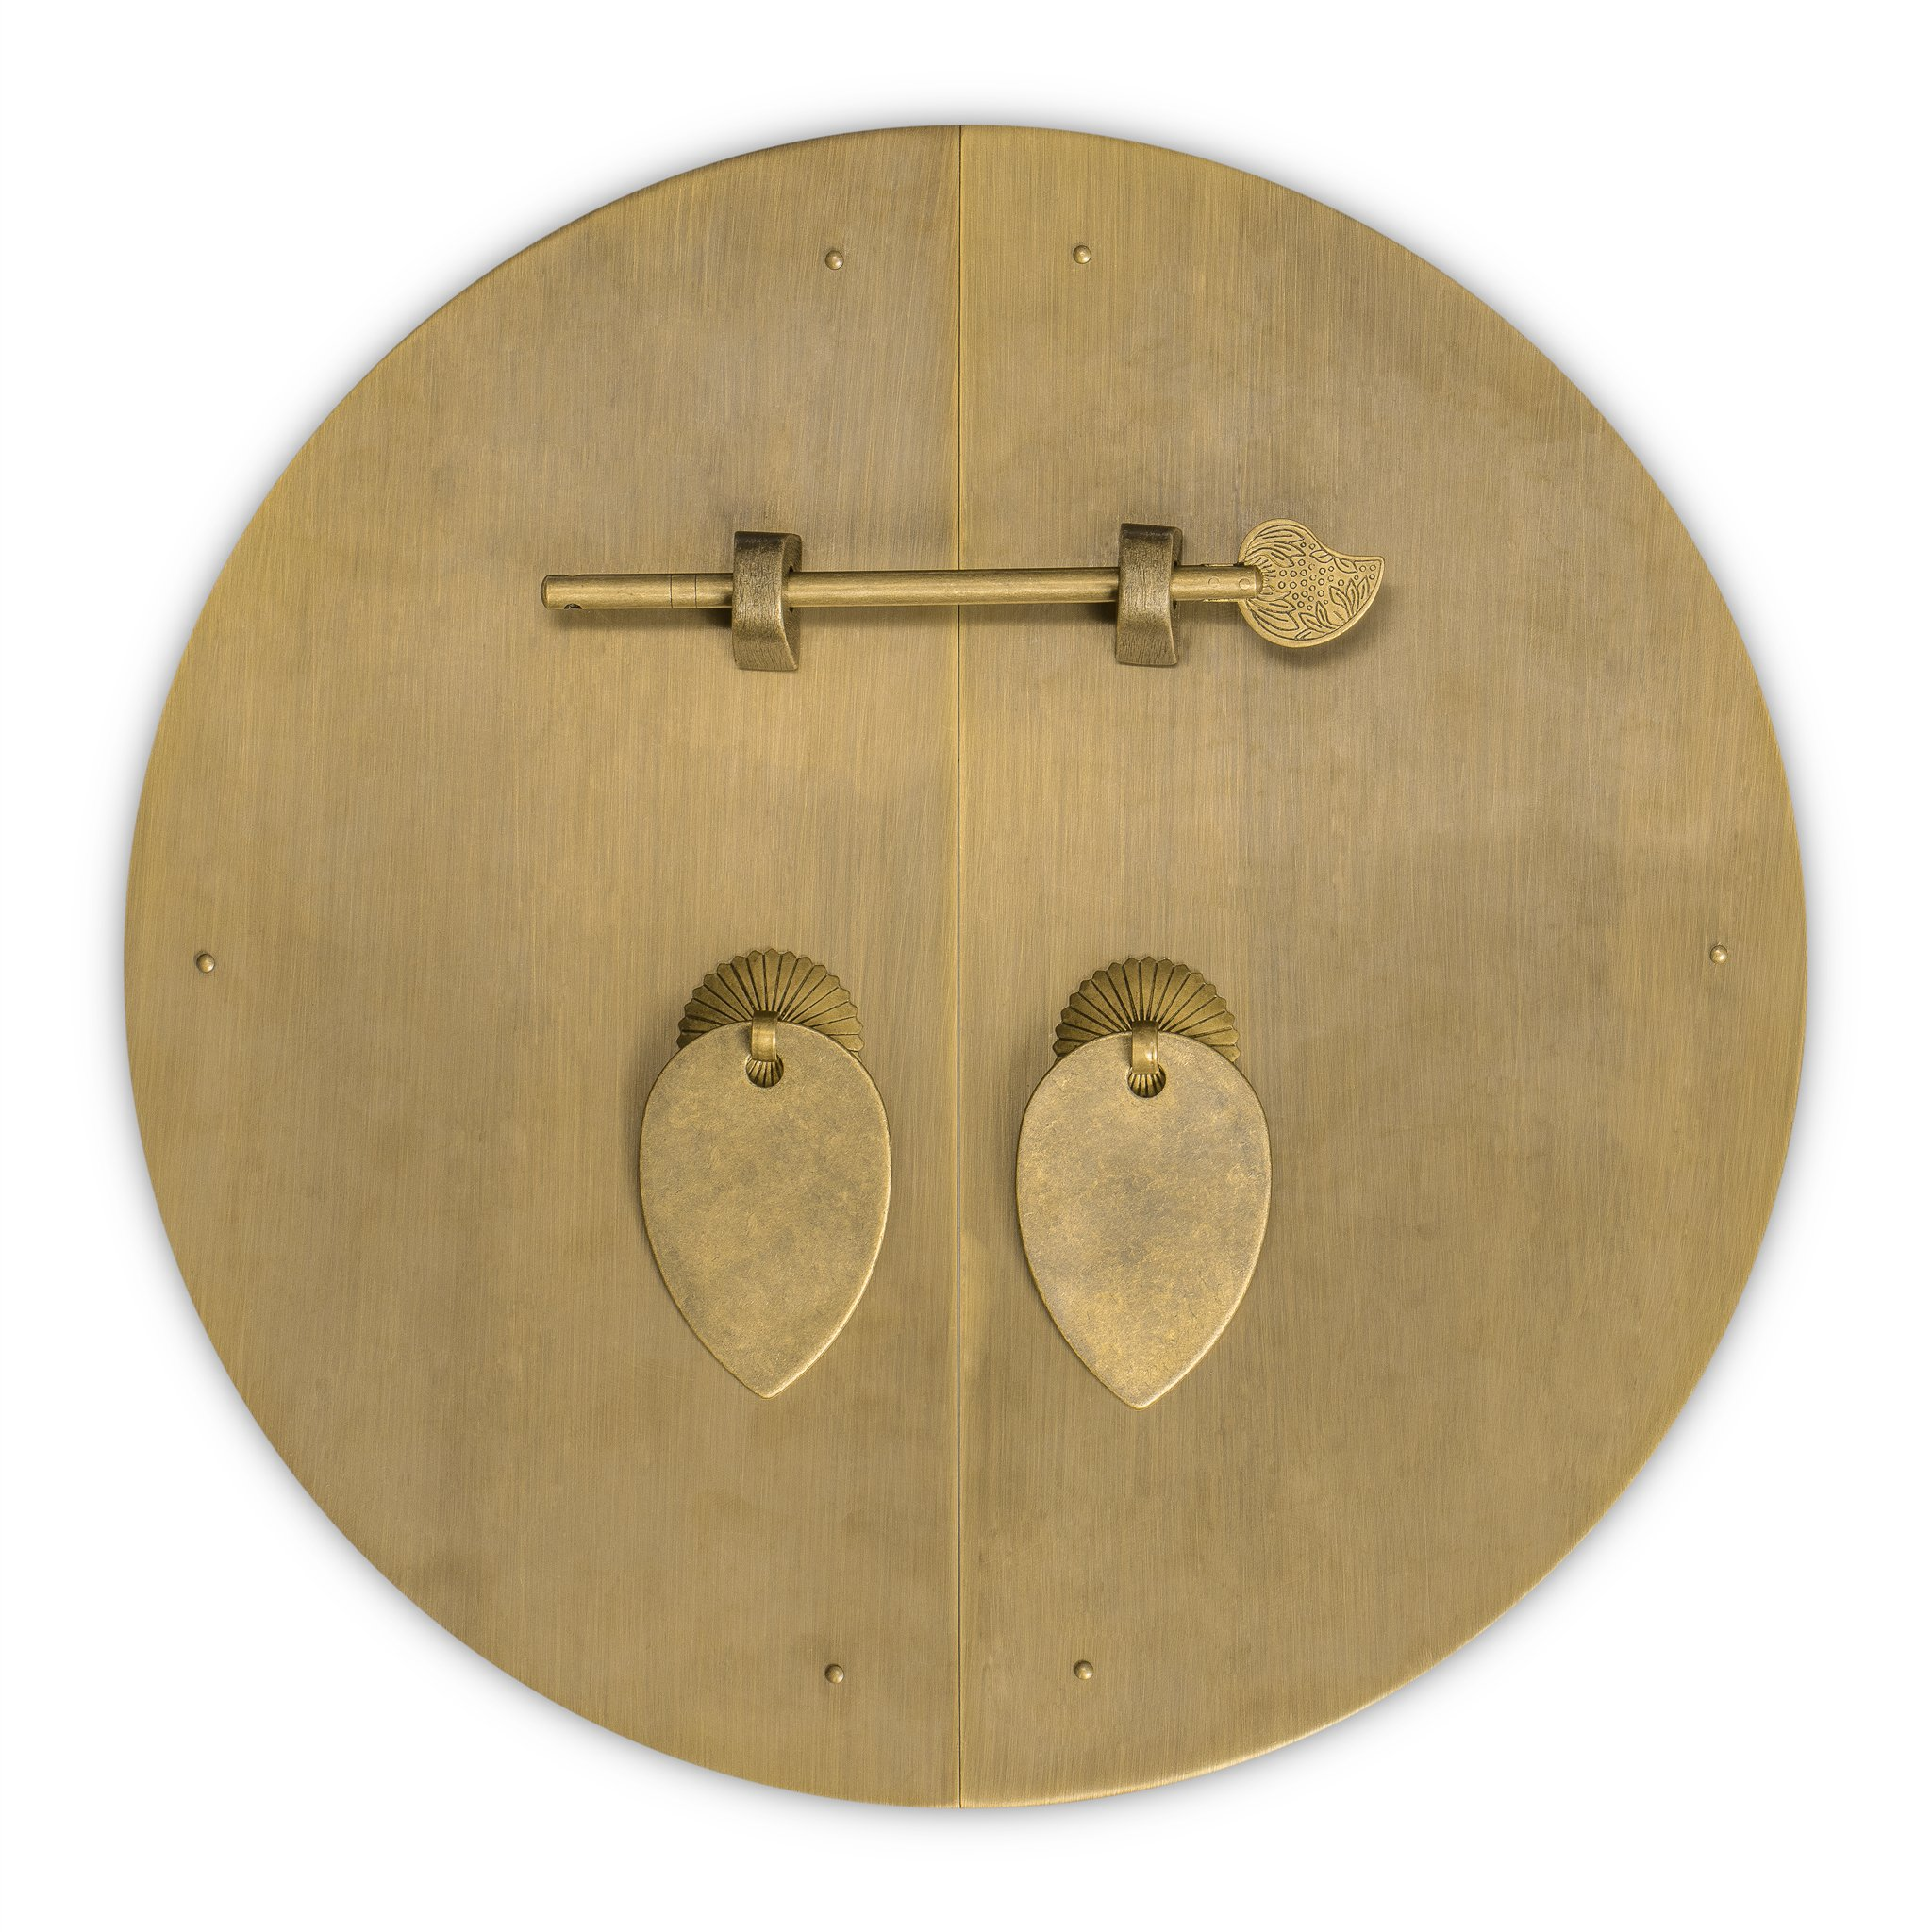 CBH Classic Round Brass Cabinet Face Plate Backplate Hardware Set 11''